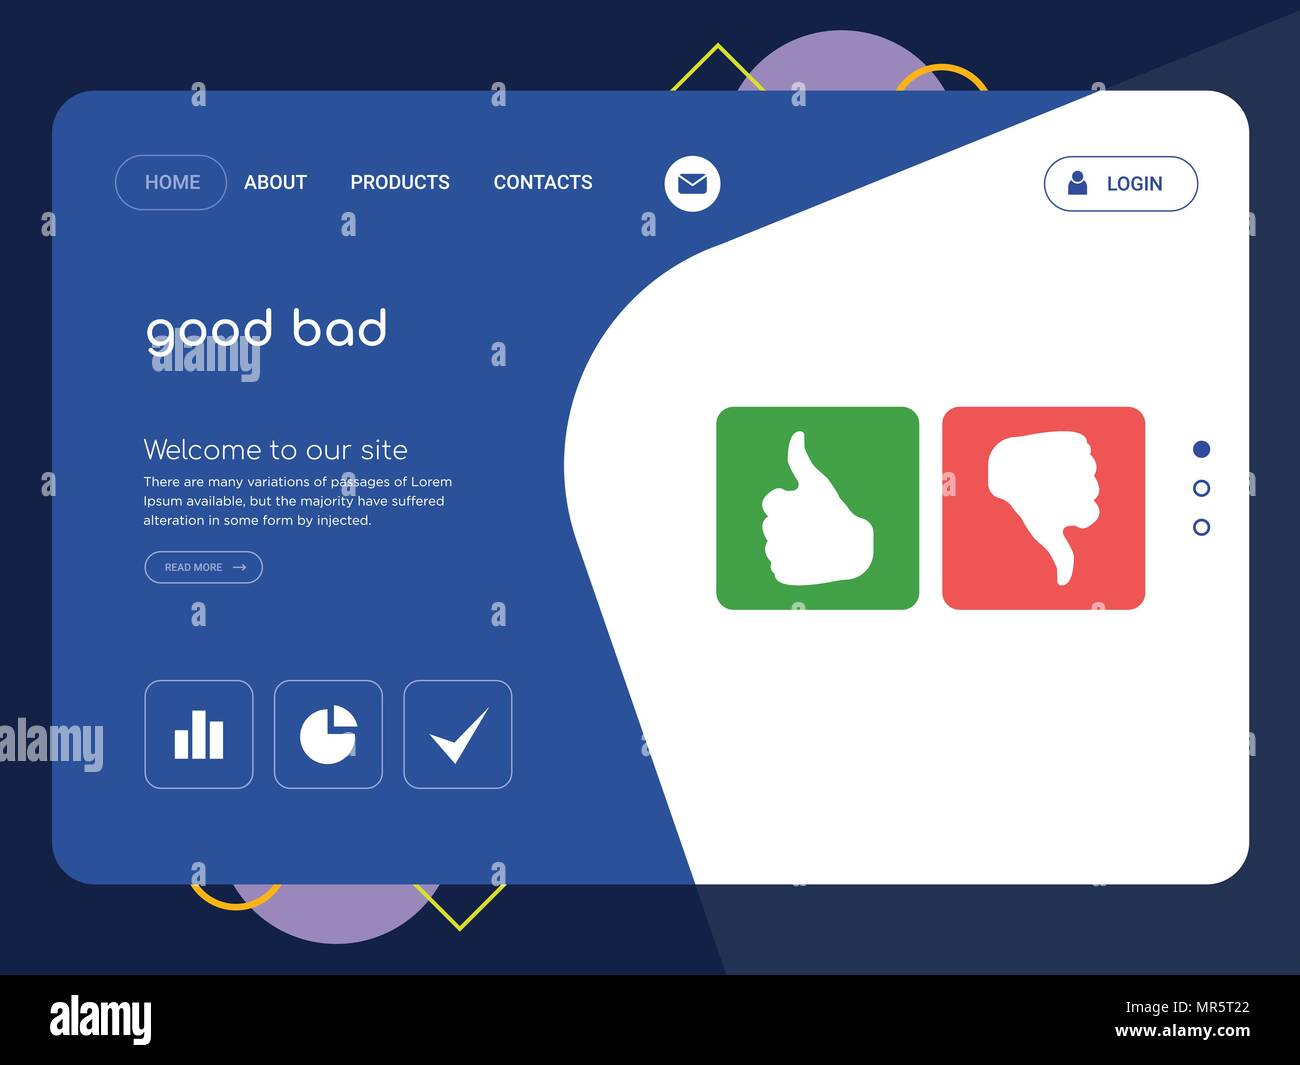 Quality One Page Good Bad Website Template Vector Eps Modern Web Design With Flat Ui Elements And Landscape Illustration Ideal For Landing Page Stock Vector Image Art Alamy